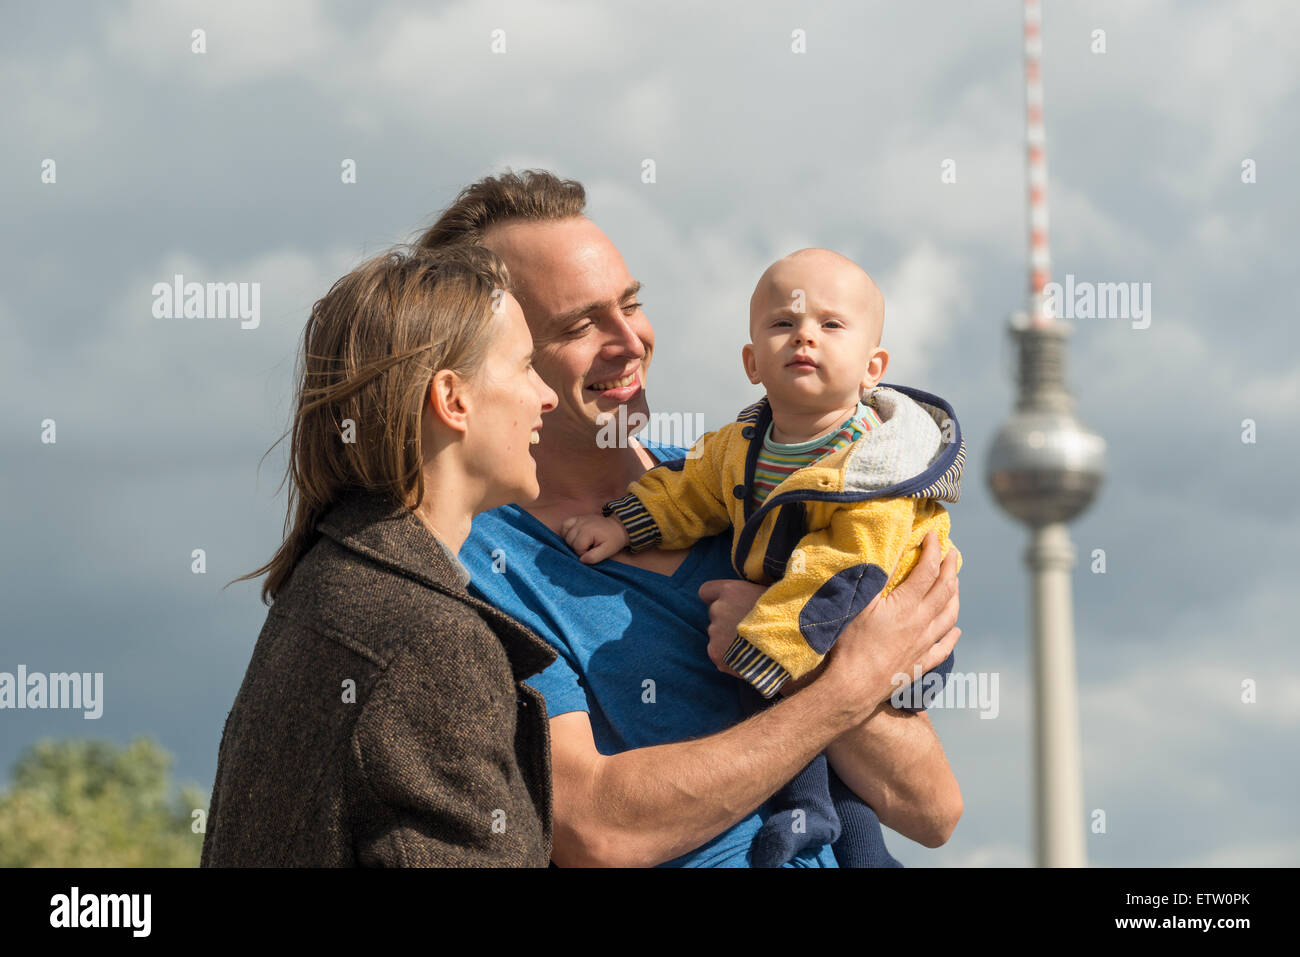 Germany, Berlin, happy couple with baby boy in front of television tower - Stock Image